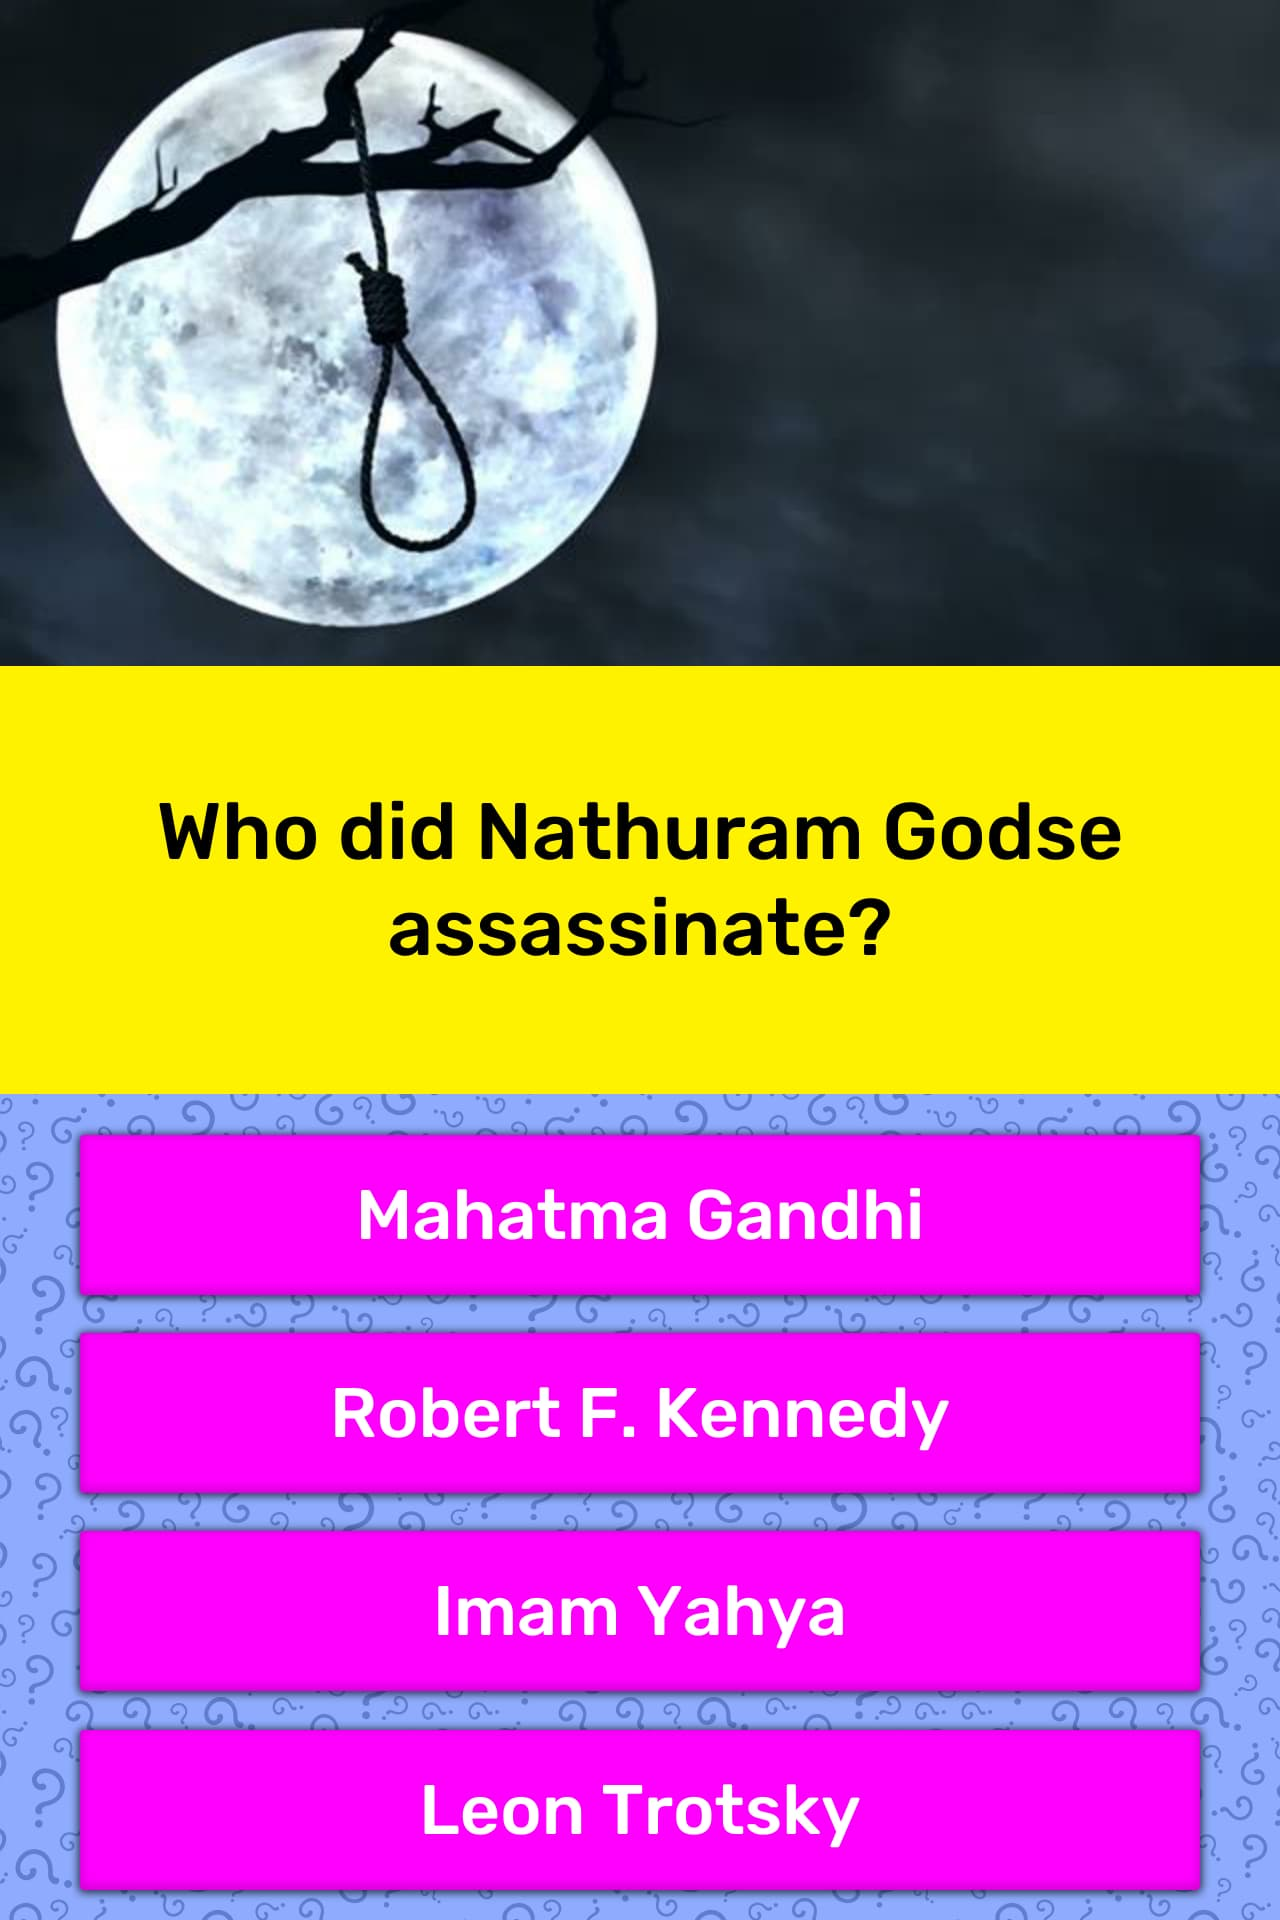 Who did Nathuram Godse assassinate? | Trivia Answers | QuizzClub